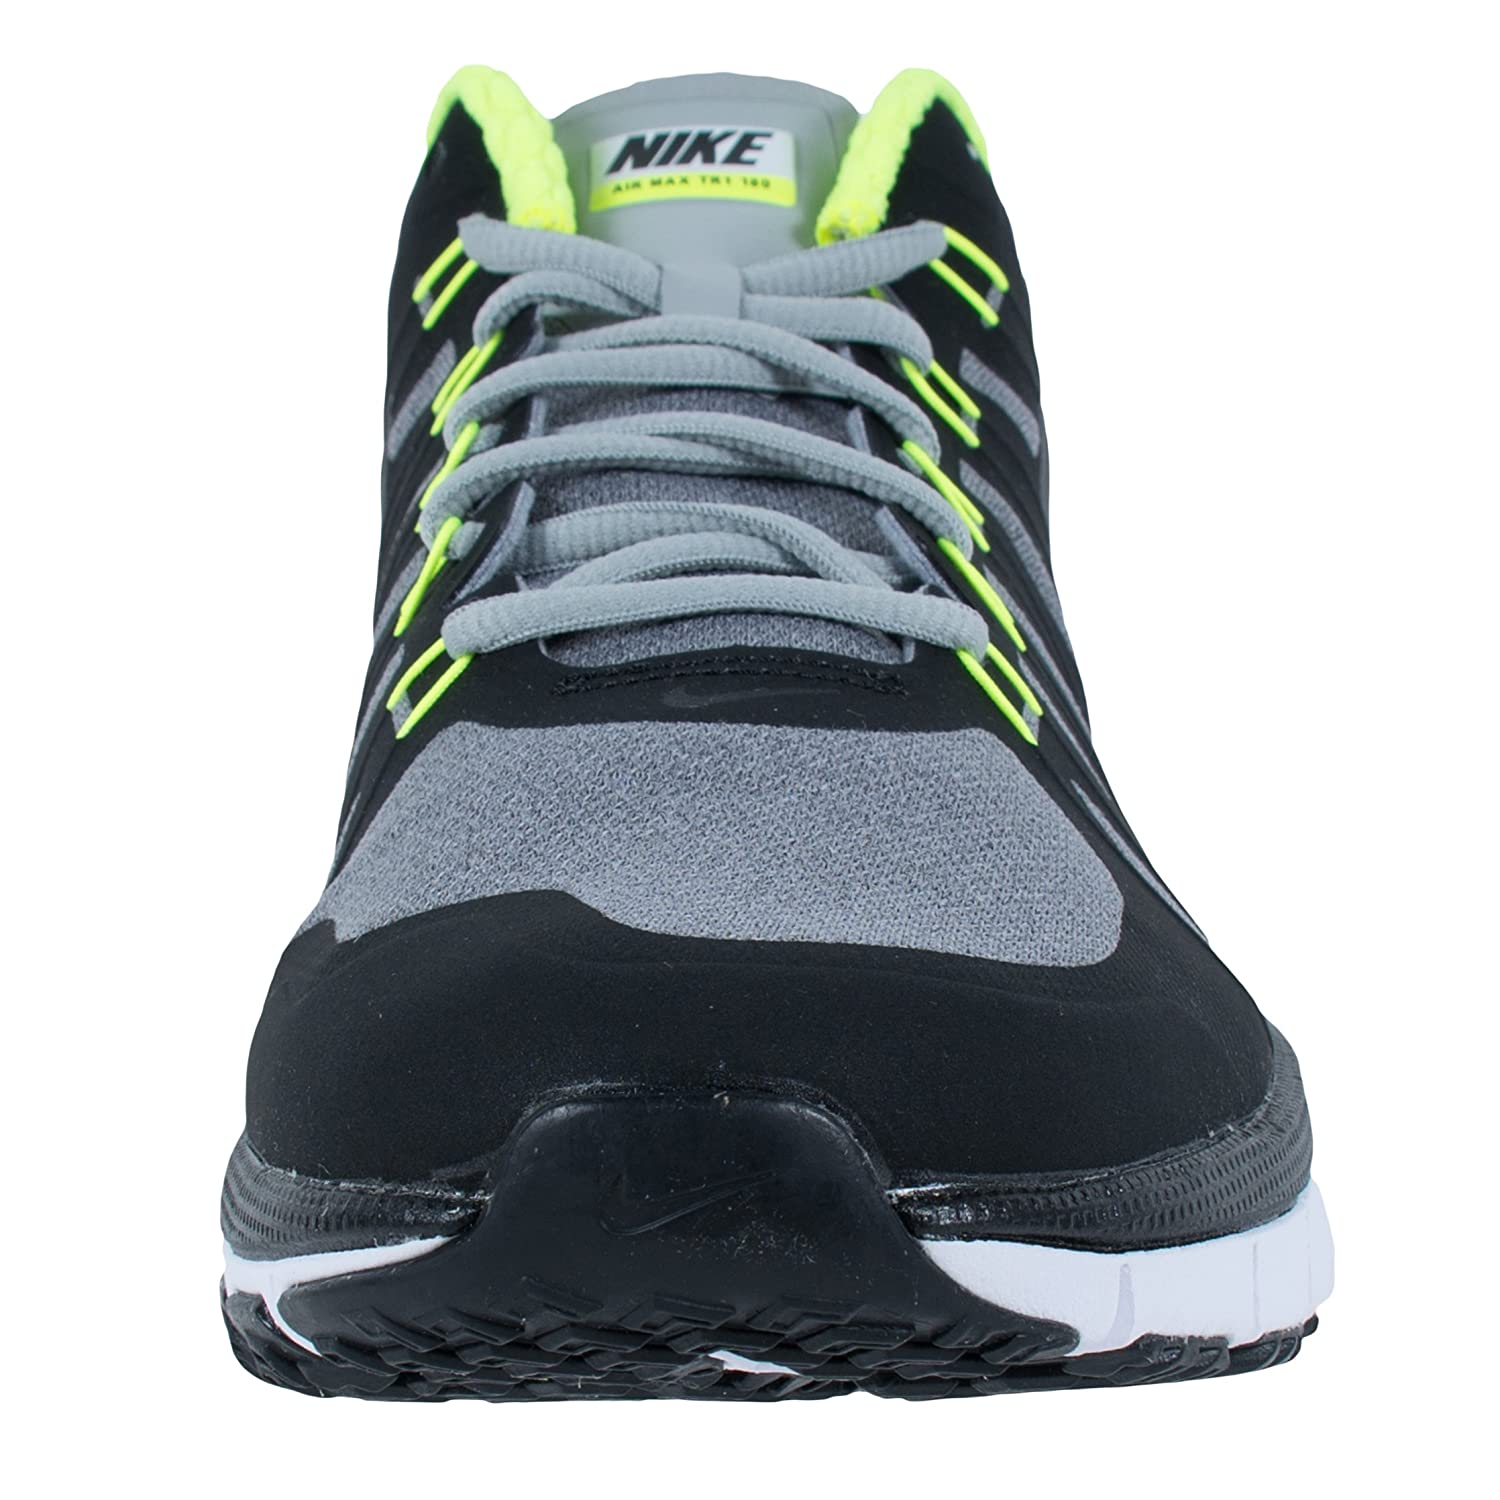 innovative design d62be 7015a Amazon.com   NIKE Men s Air Max TR180 AMP Trainers   Fashion Sneakers